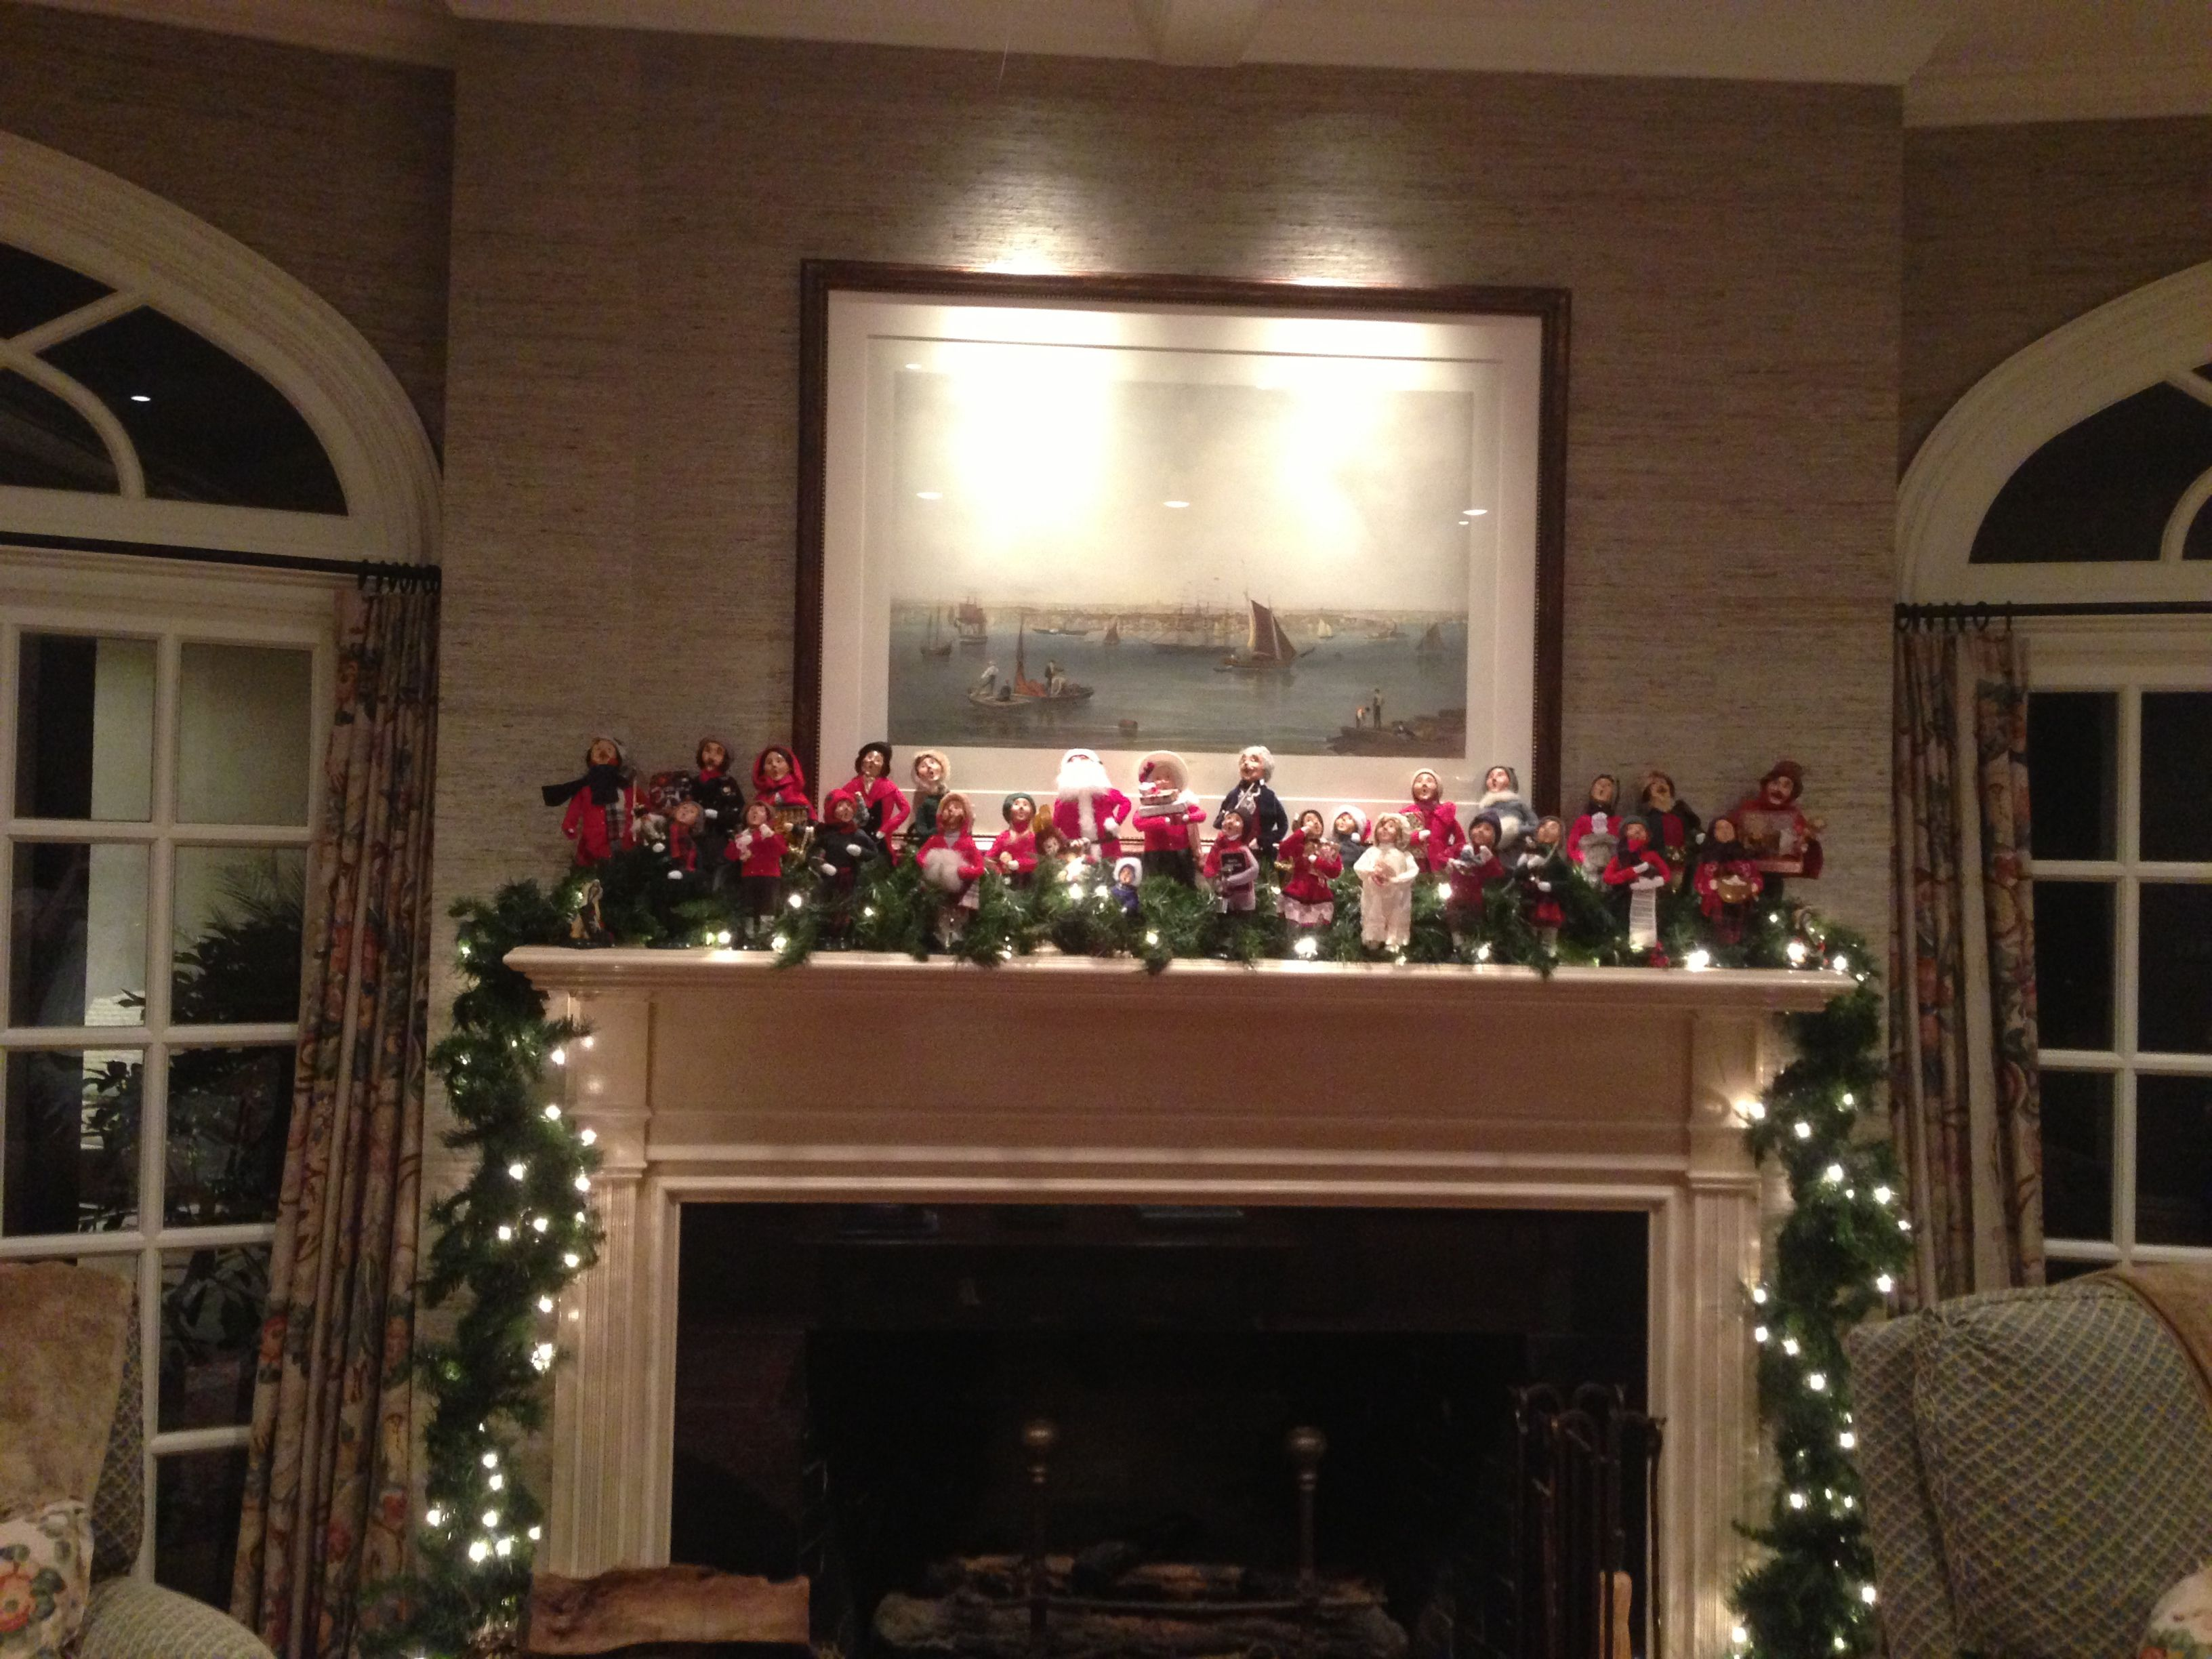 My family room mantle - The Carolers adding a festive flair.